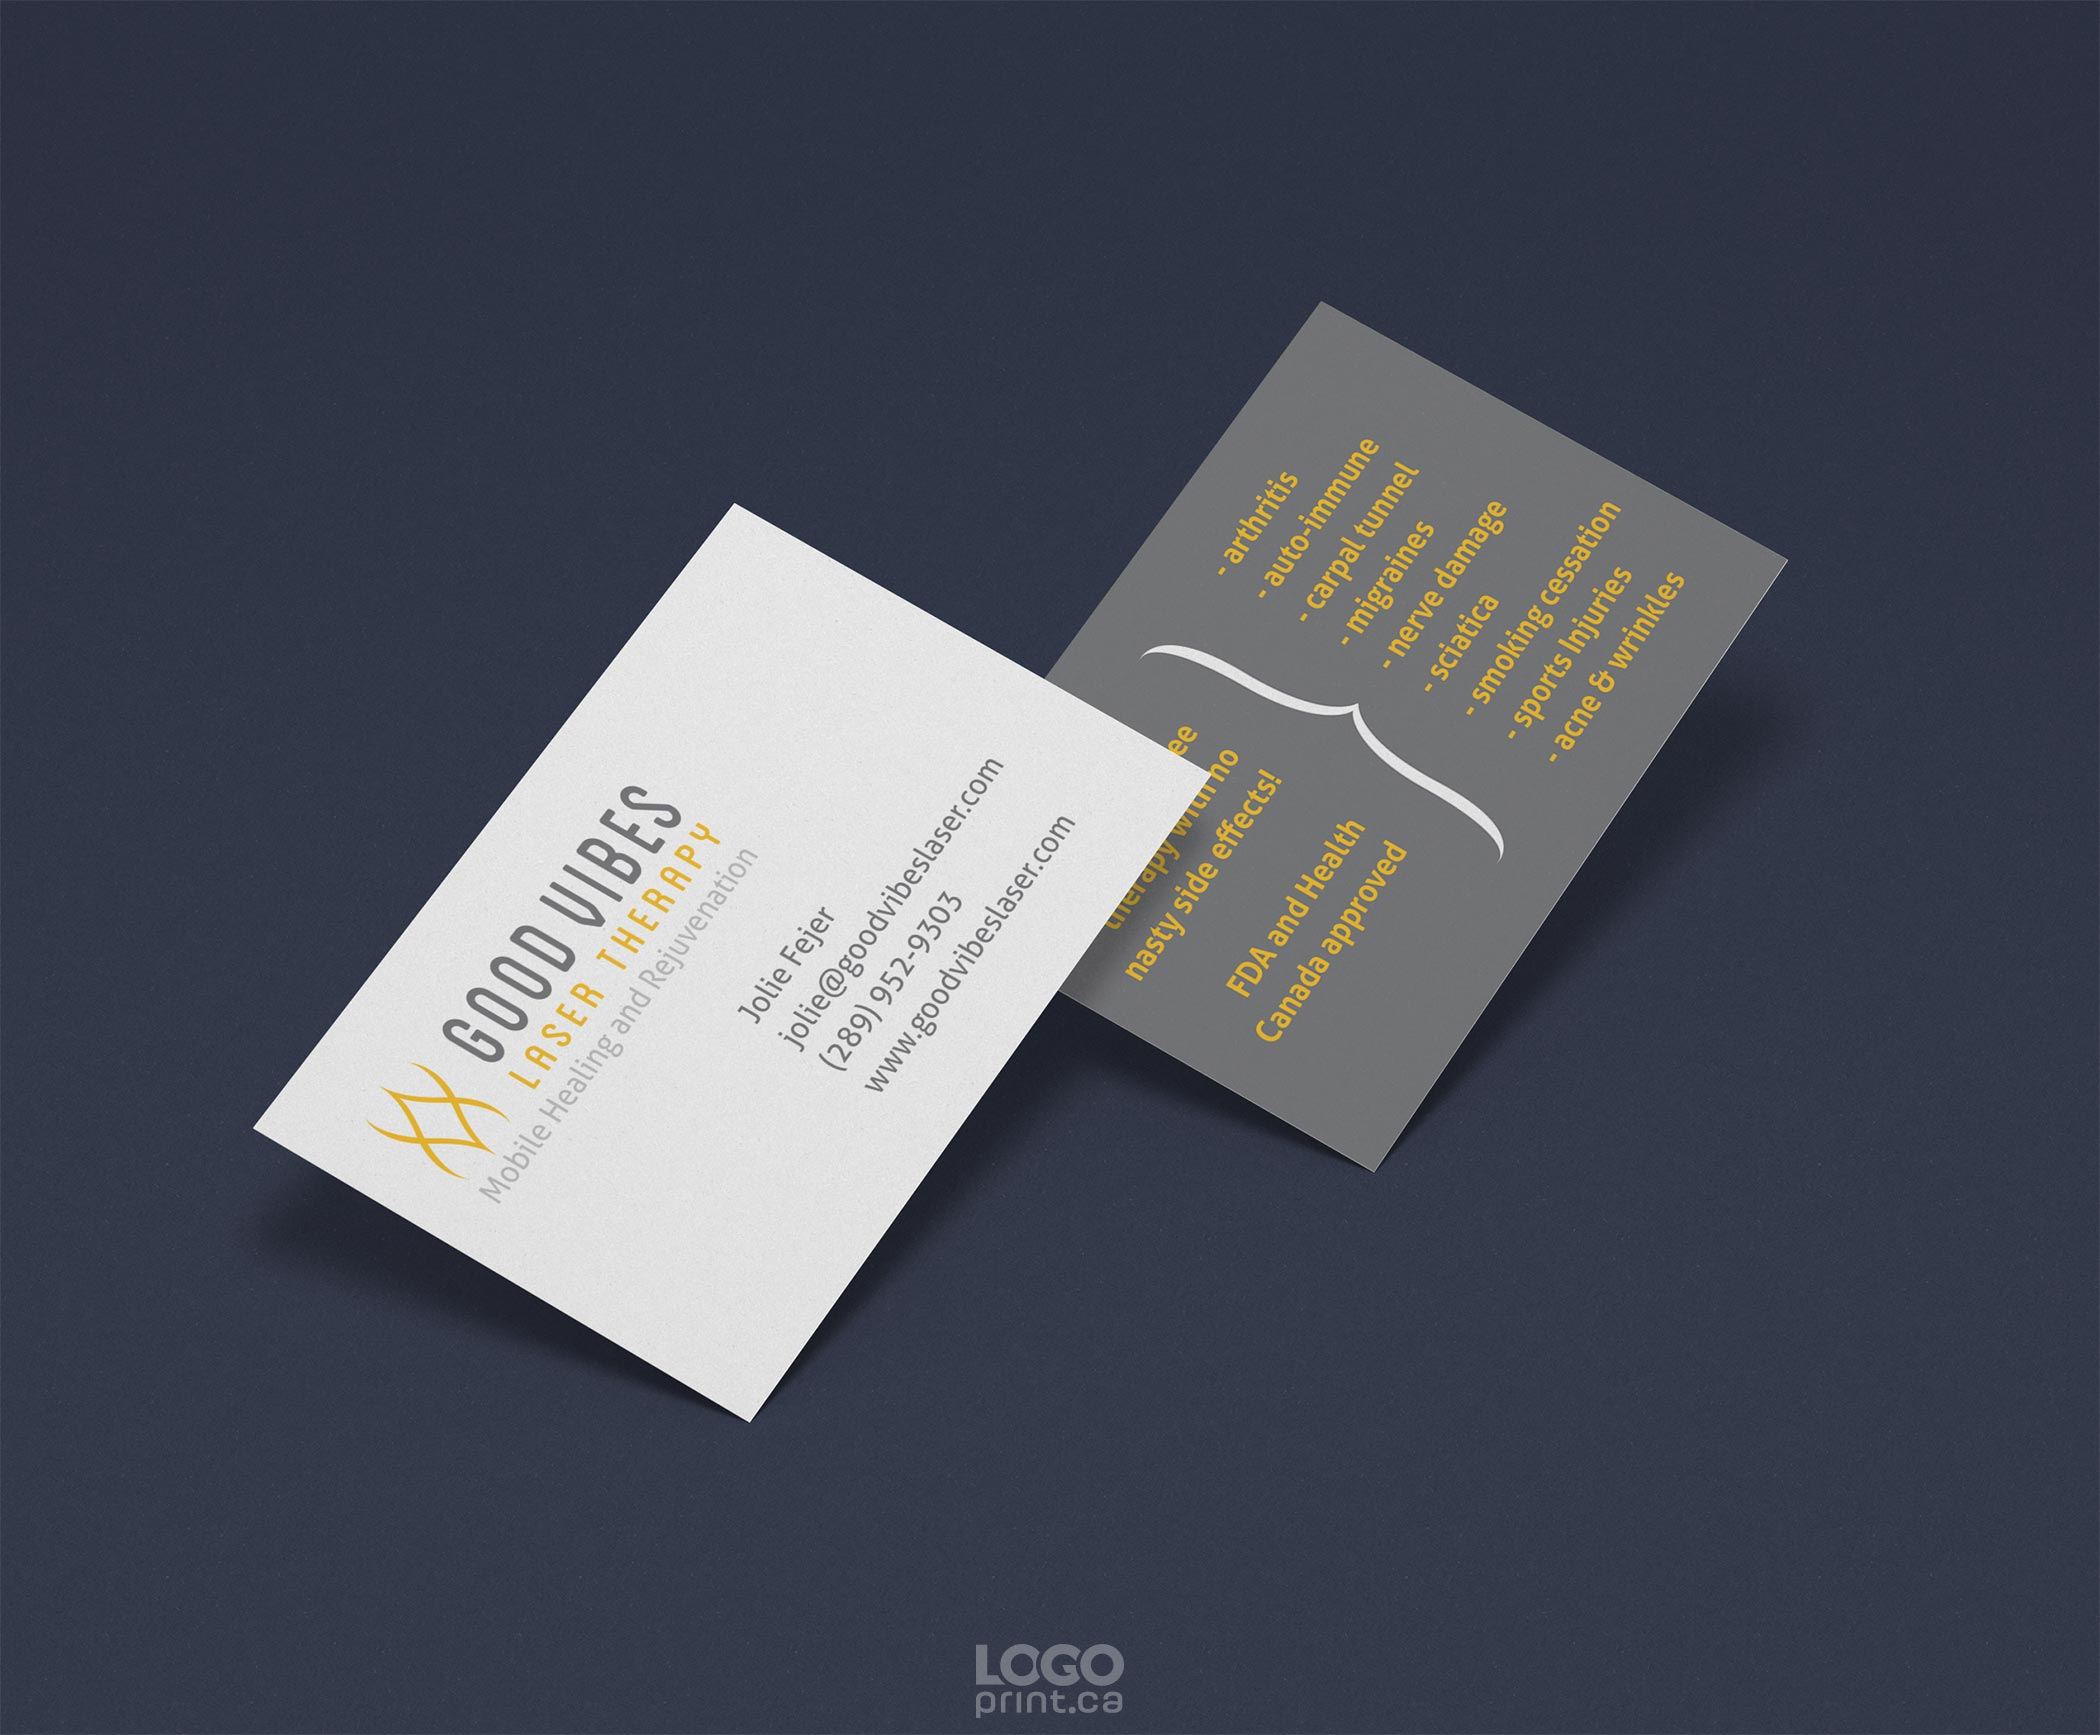 designs variety of business card designs by the creative team at logo